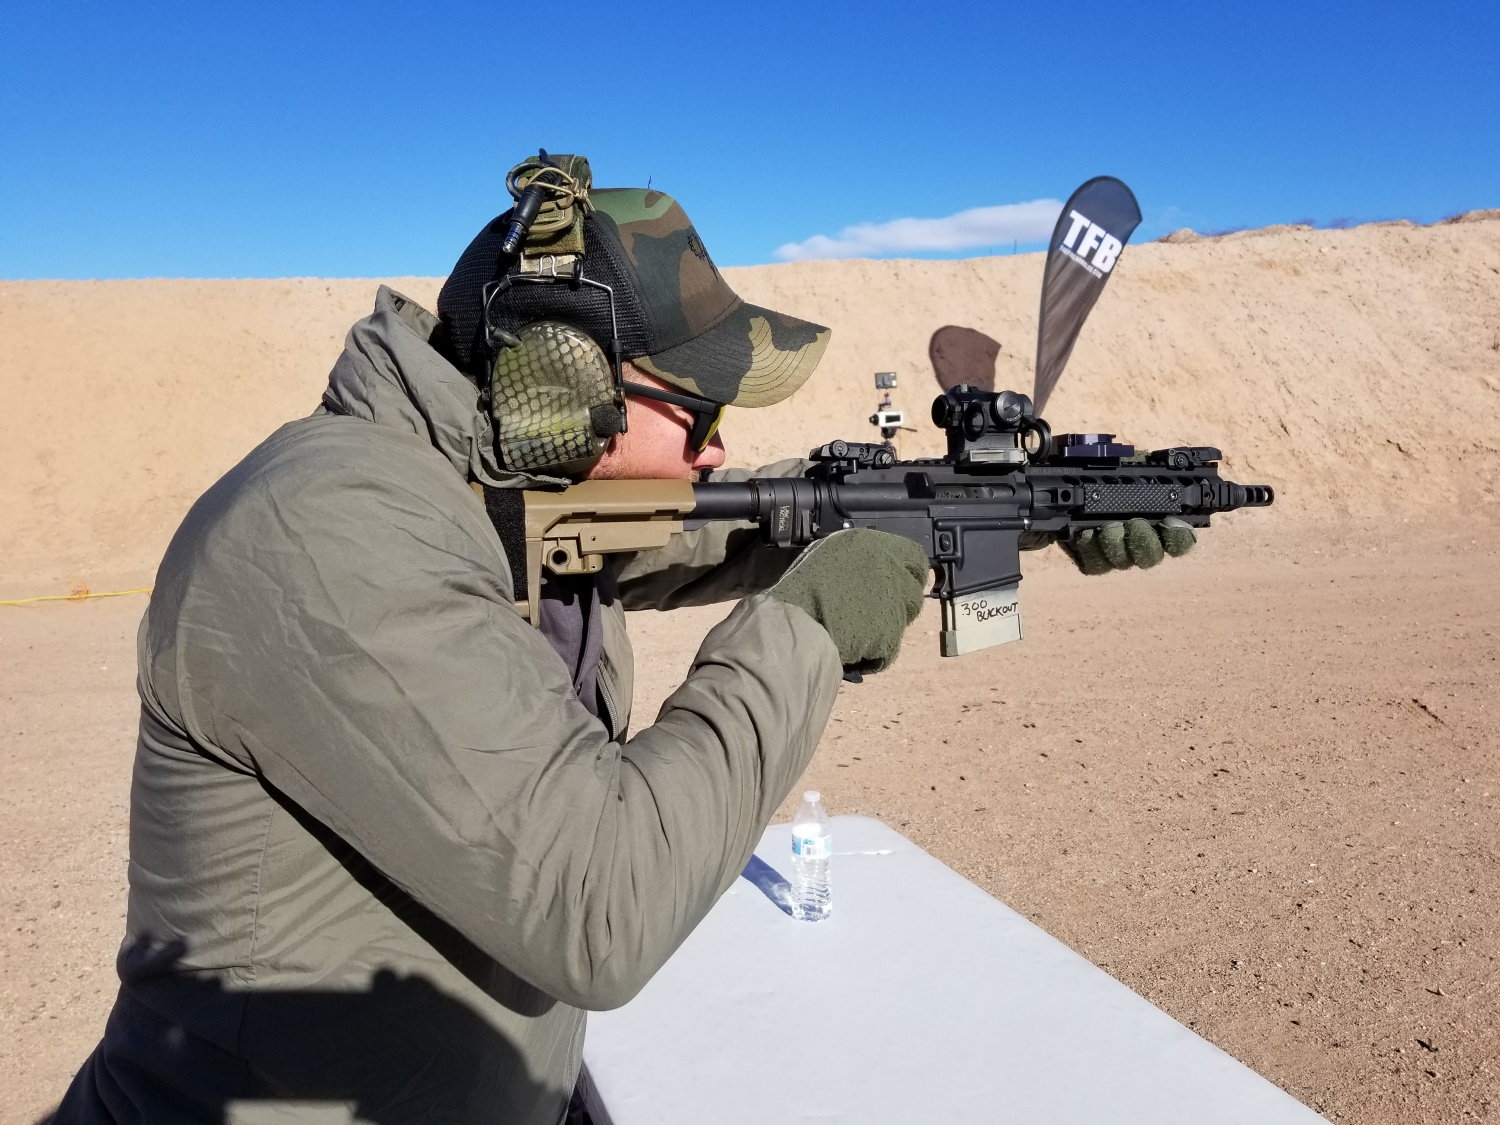 Representative of Axeon optics with 300 BLK pistol.